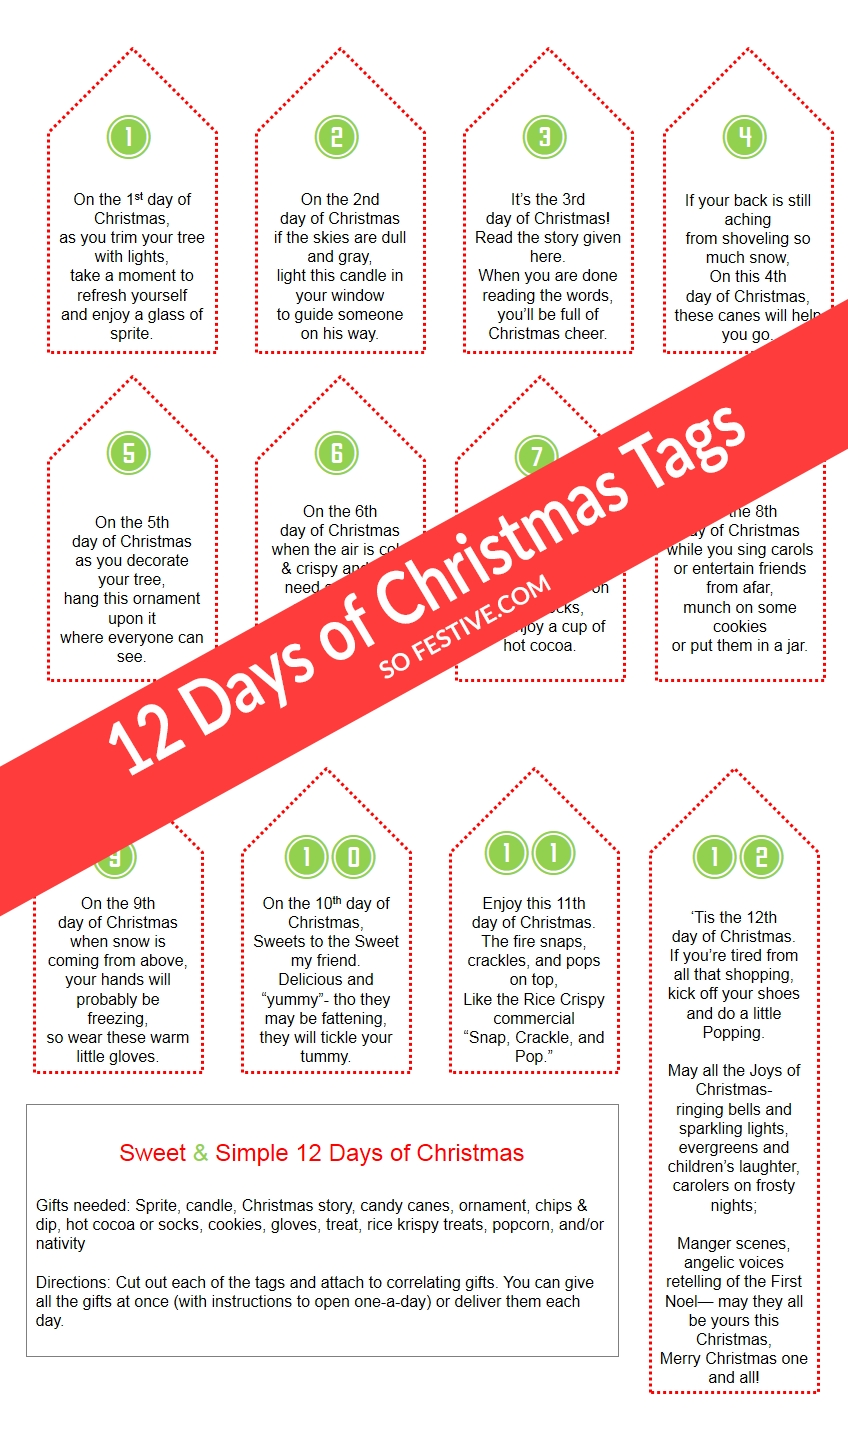 10 Attractive 12 Days Of Christmas Ideas sweet simple 12 days of christmas printables so festive 6 2020